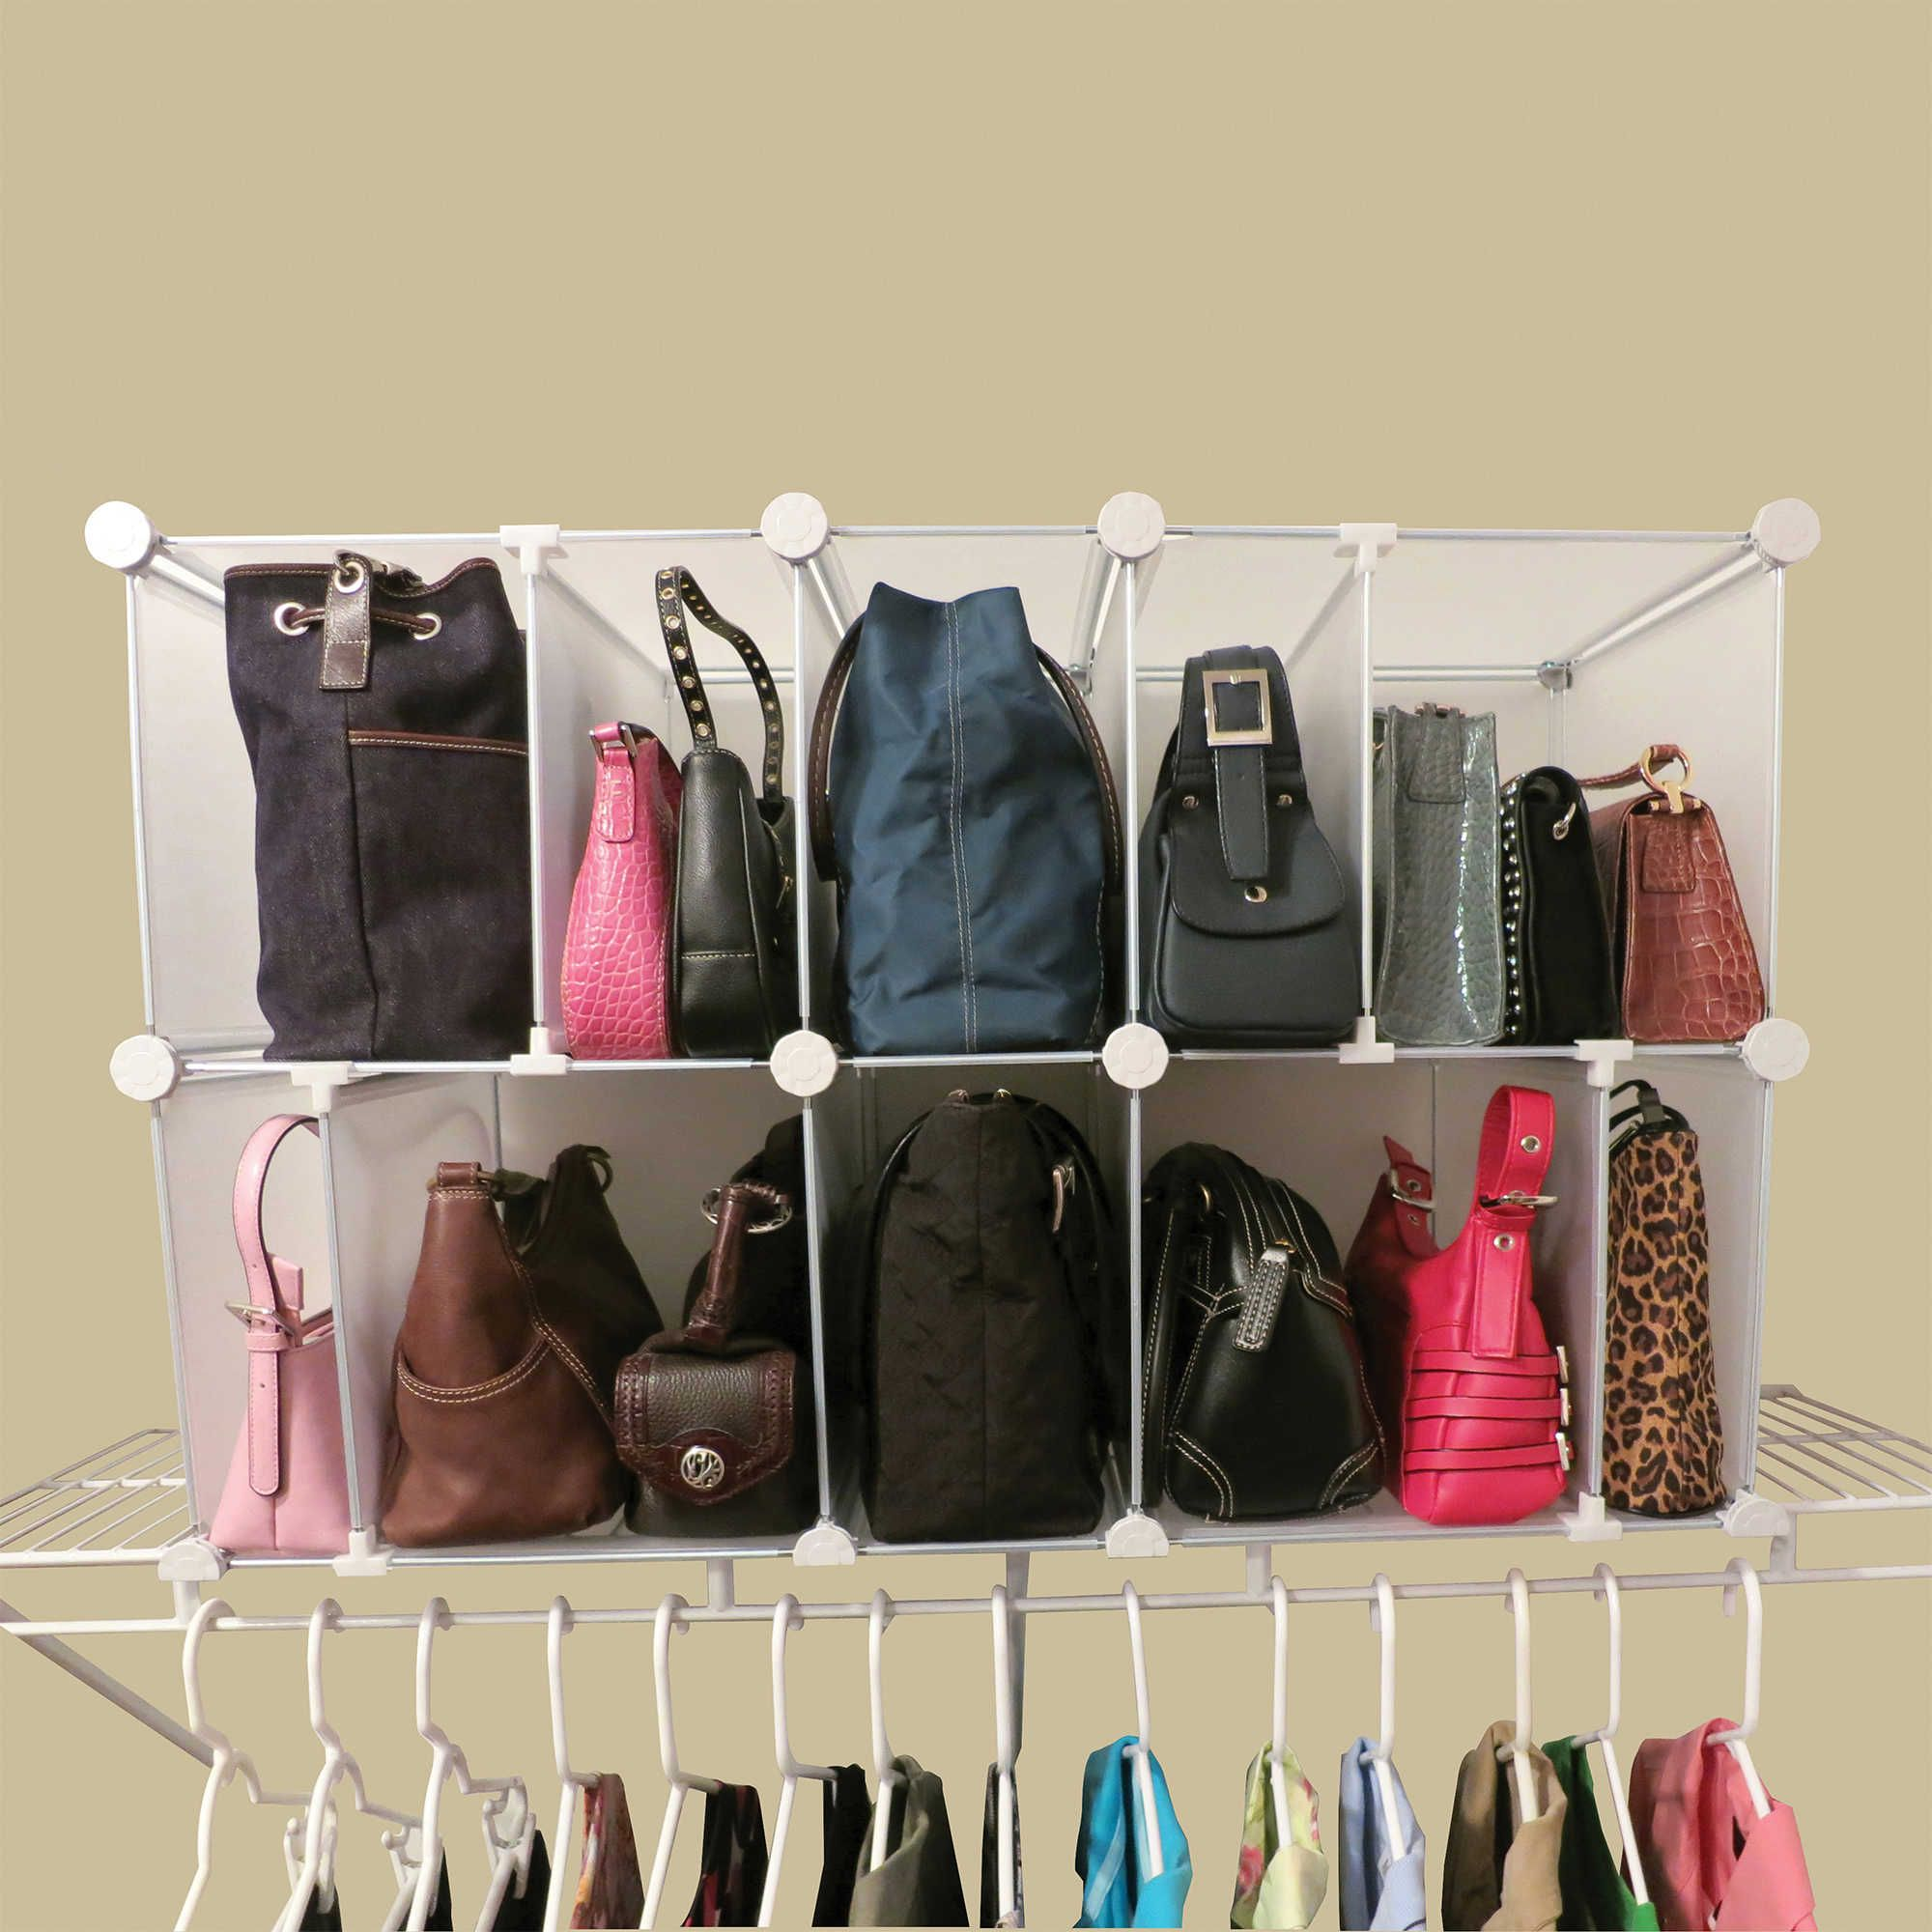 Genial Luxury Living Deluxe Park A Purse Organizer (Set Of